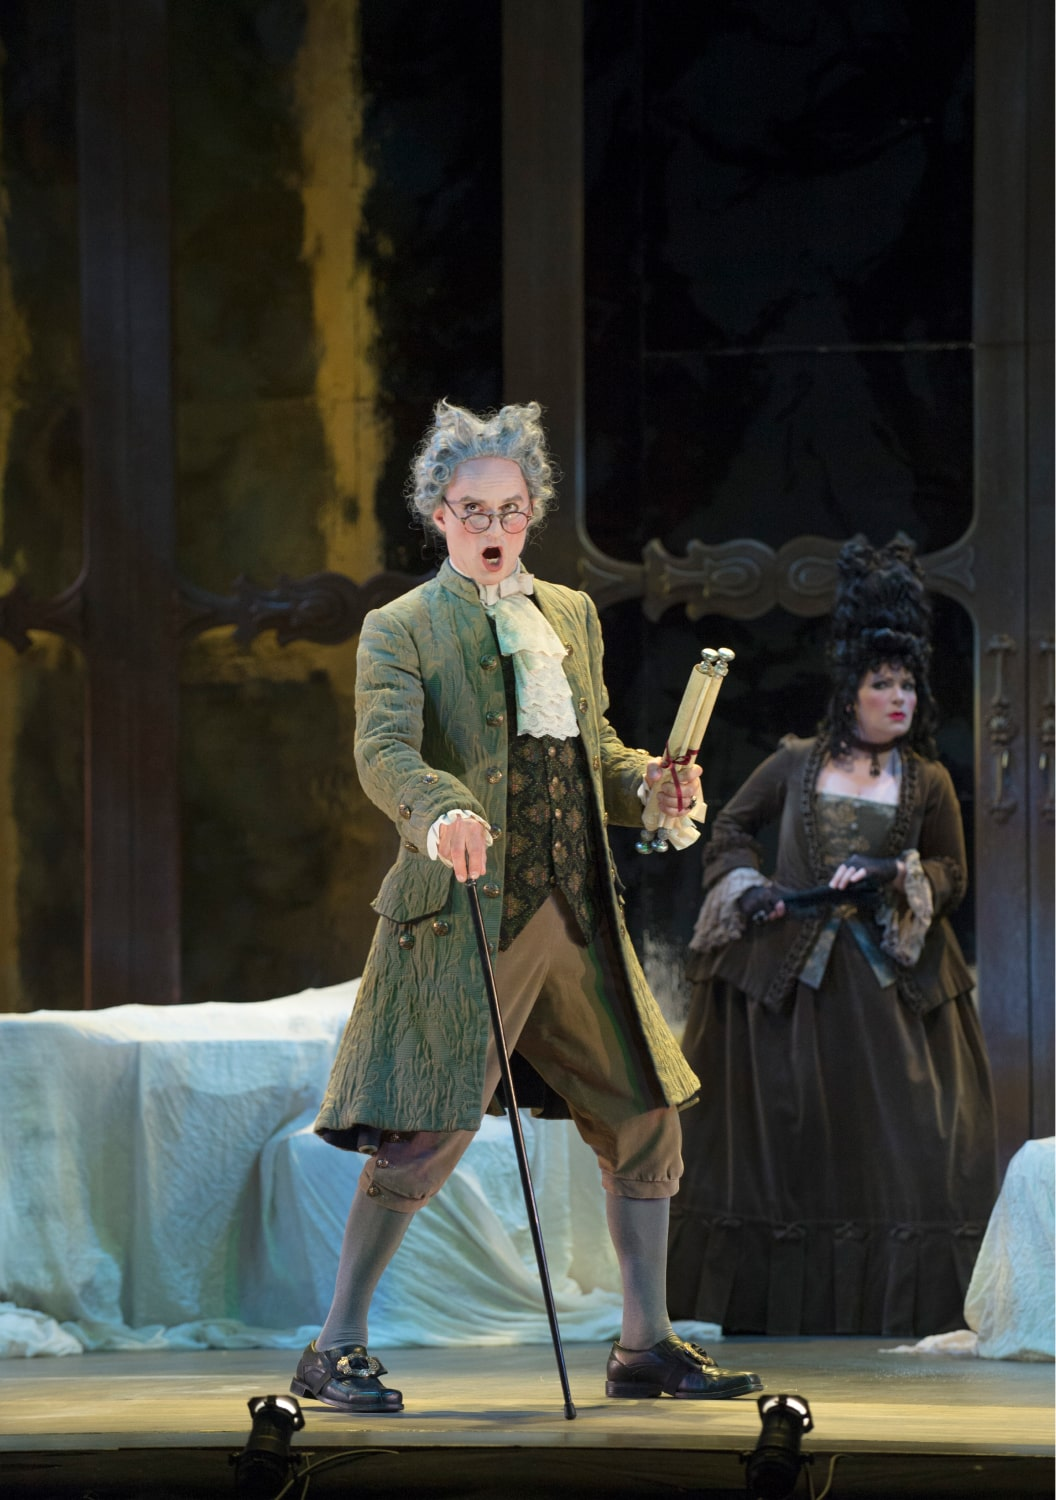 Green-frocked singer in powdered wig stands in footlights in front of throw-covered furniture watched by woman in background.